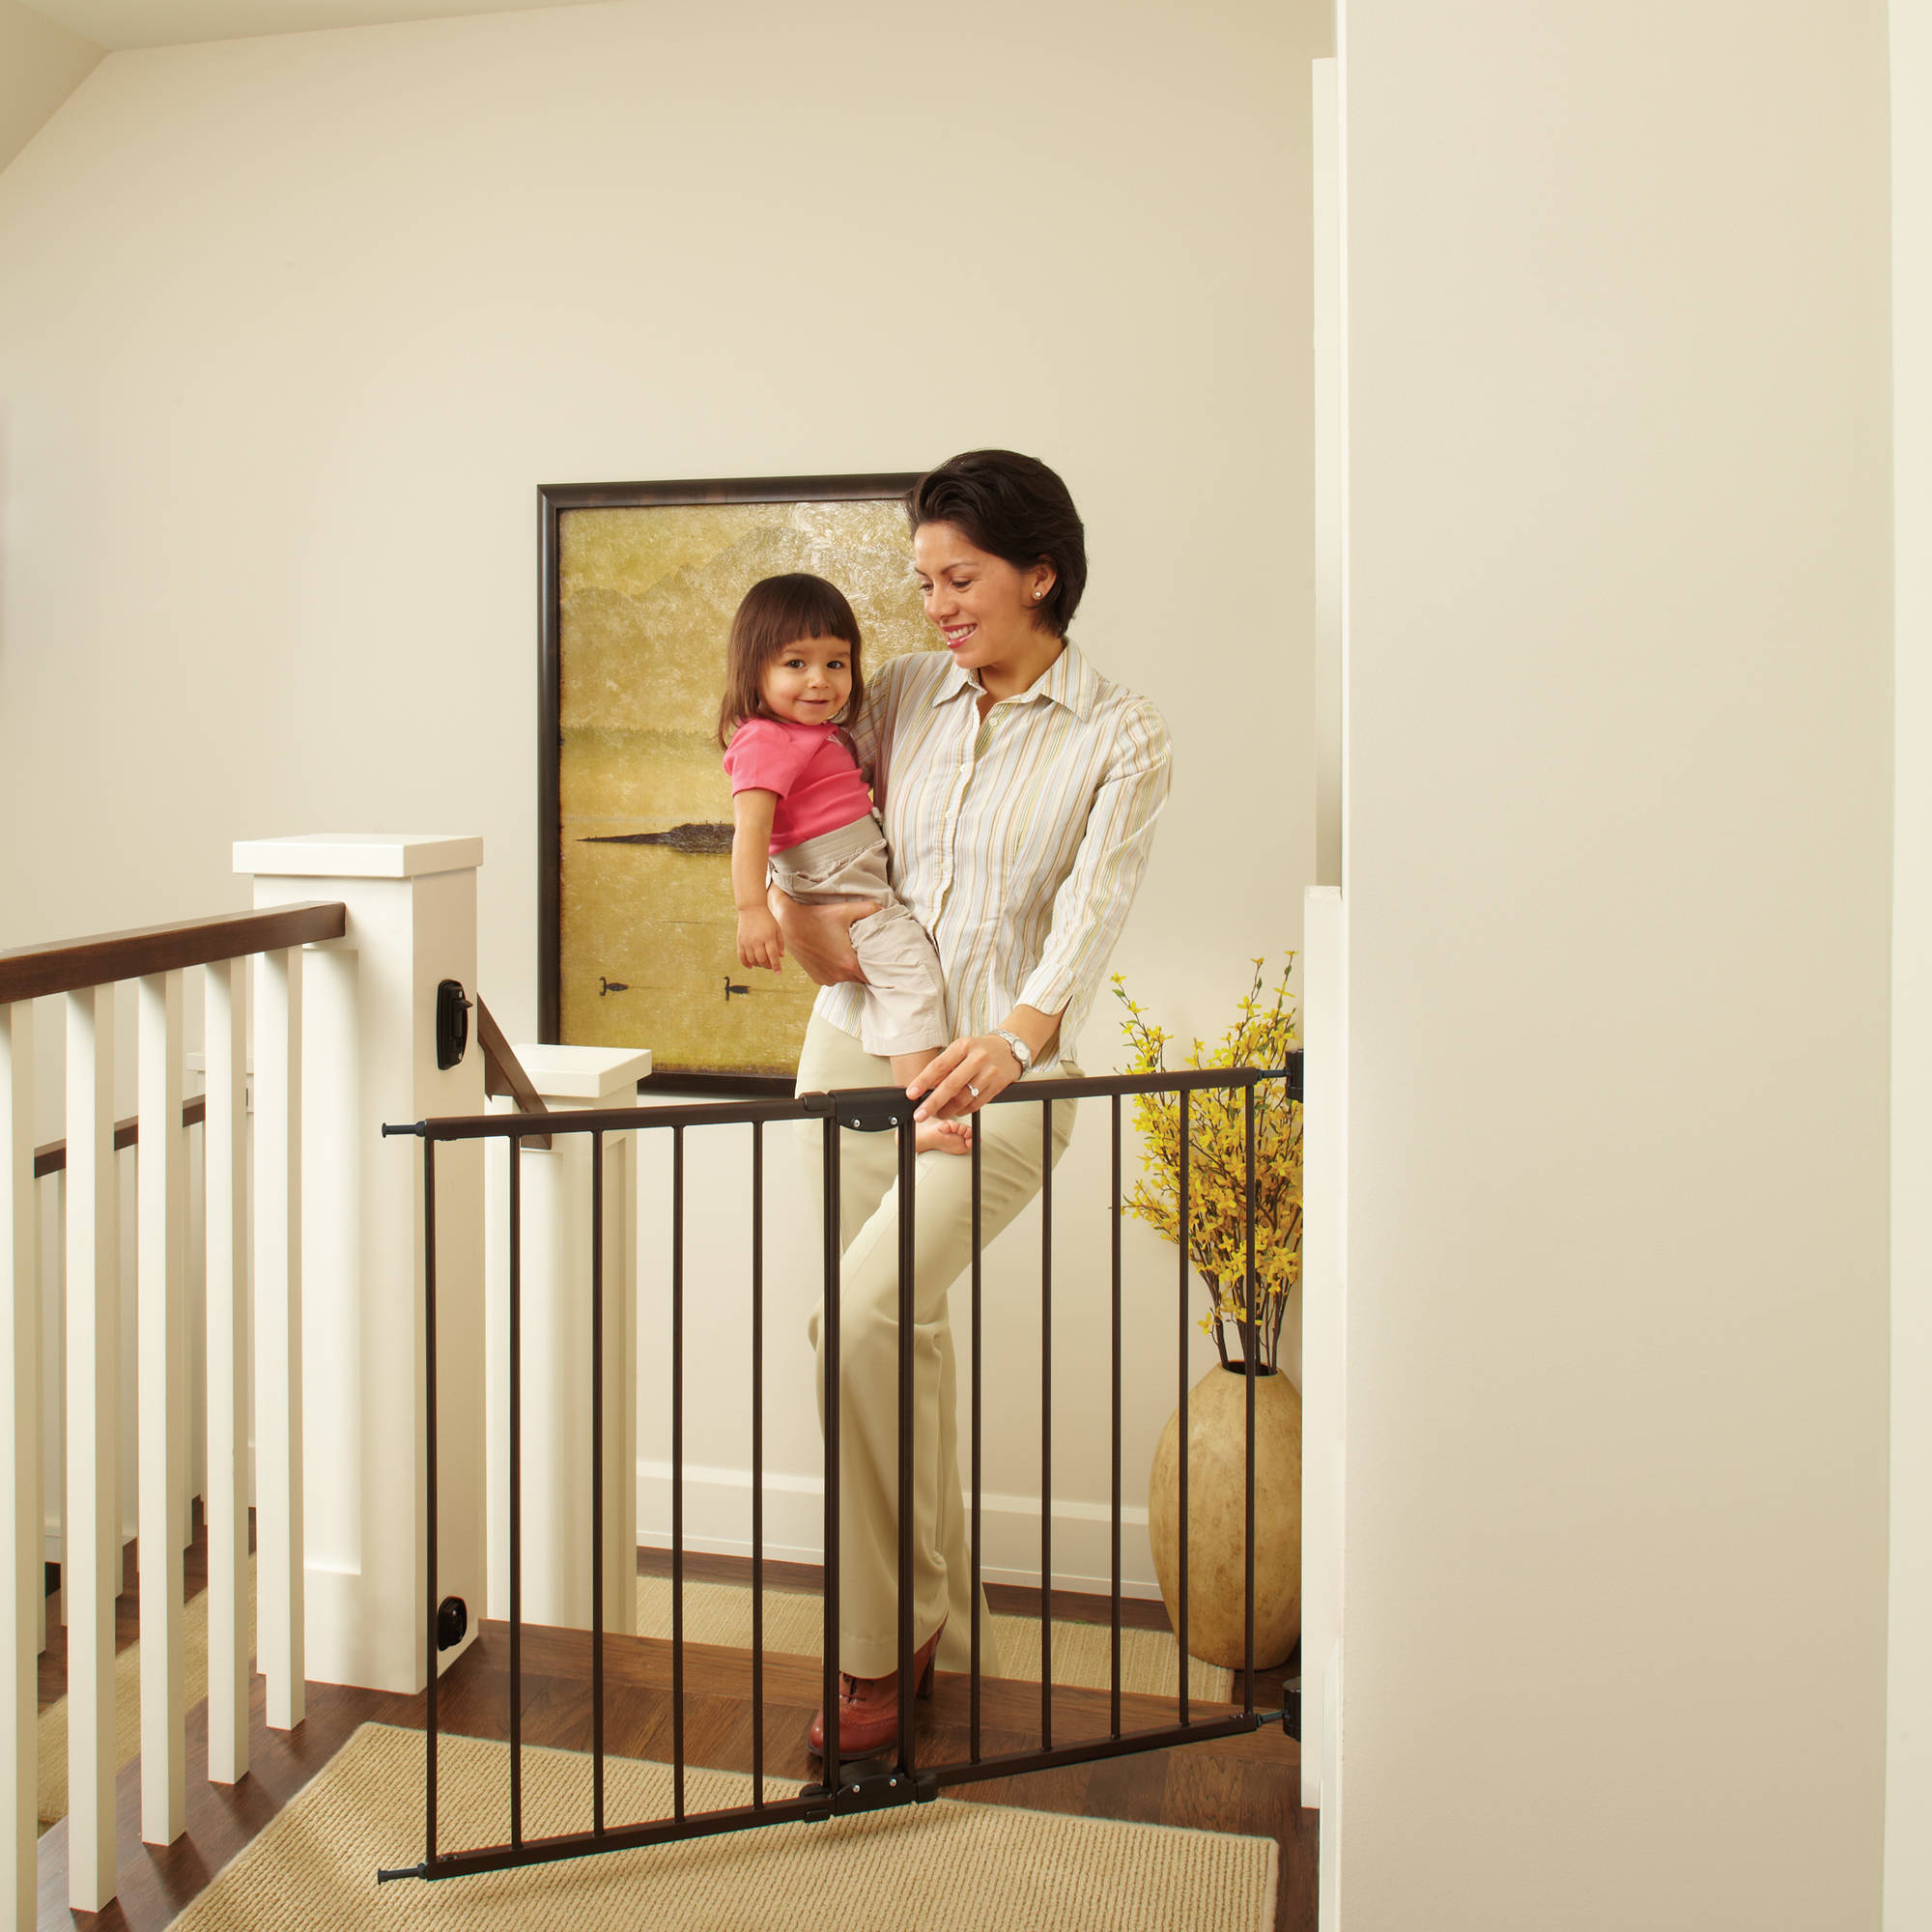 "North States Easy Swing and Lock Gate 28.68""-47.85"", Top of Stairs Baby Gate, Includes Mounting Kit, Matte Bronze"